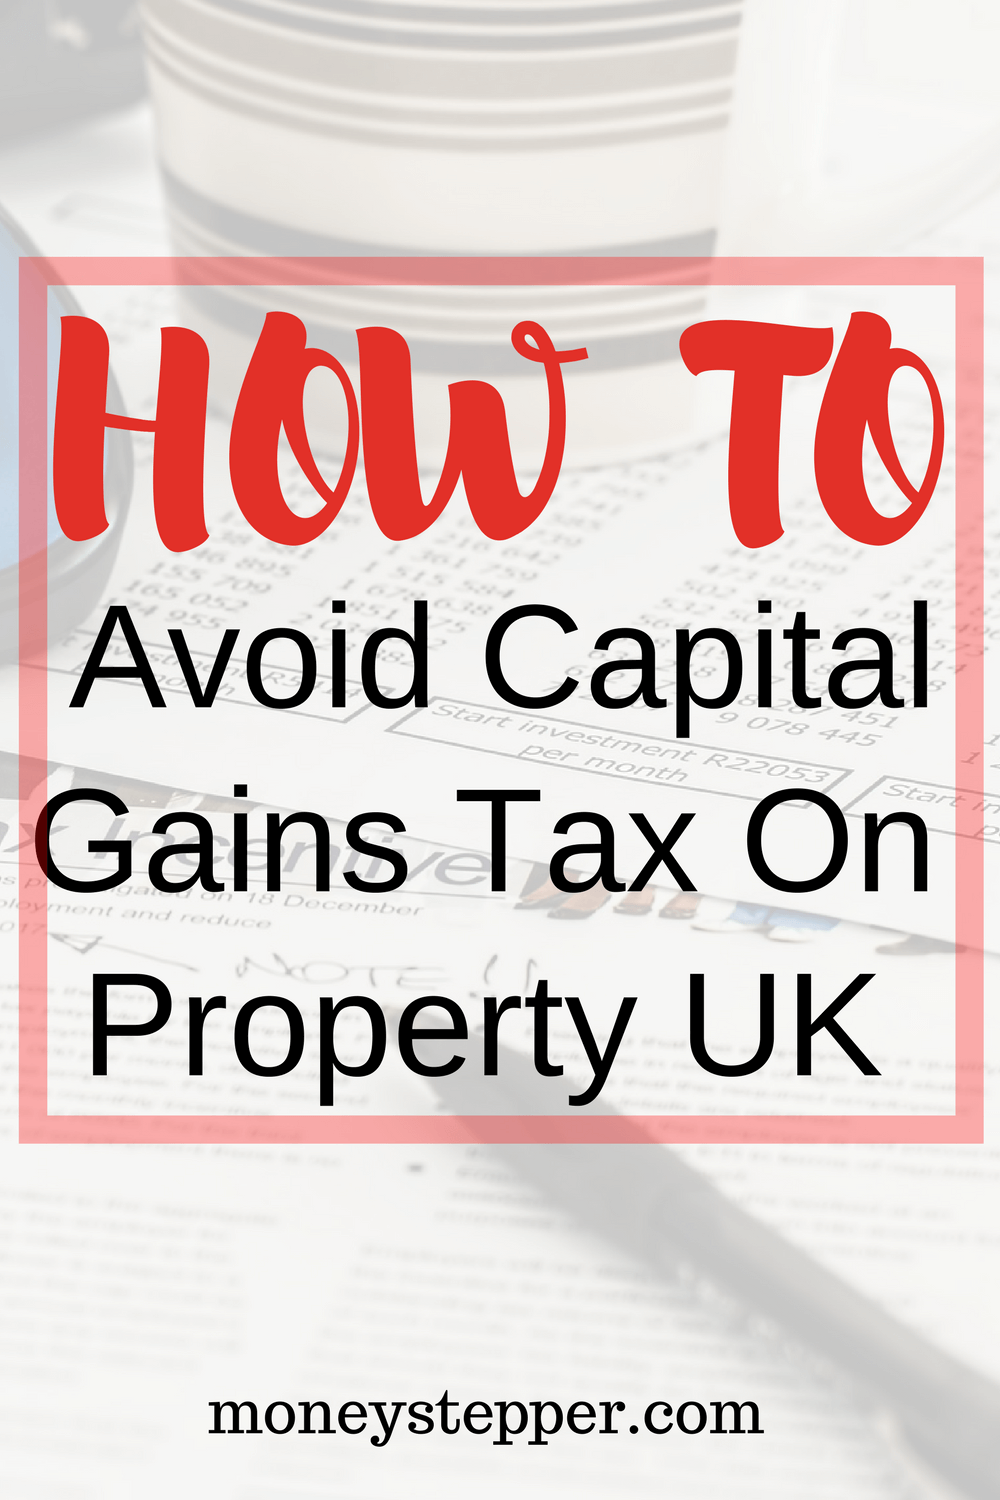 How to Avoid Capital Gains Tax on Second Homes recommendations